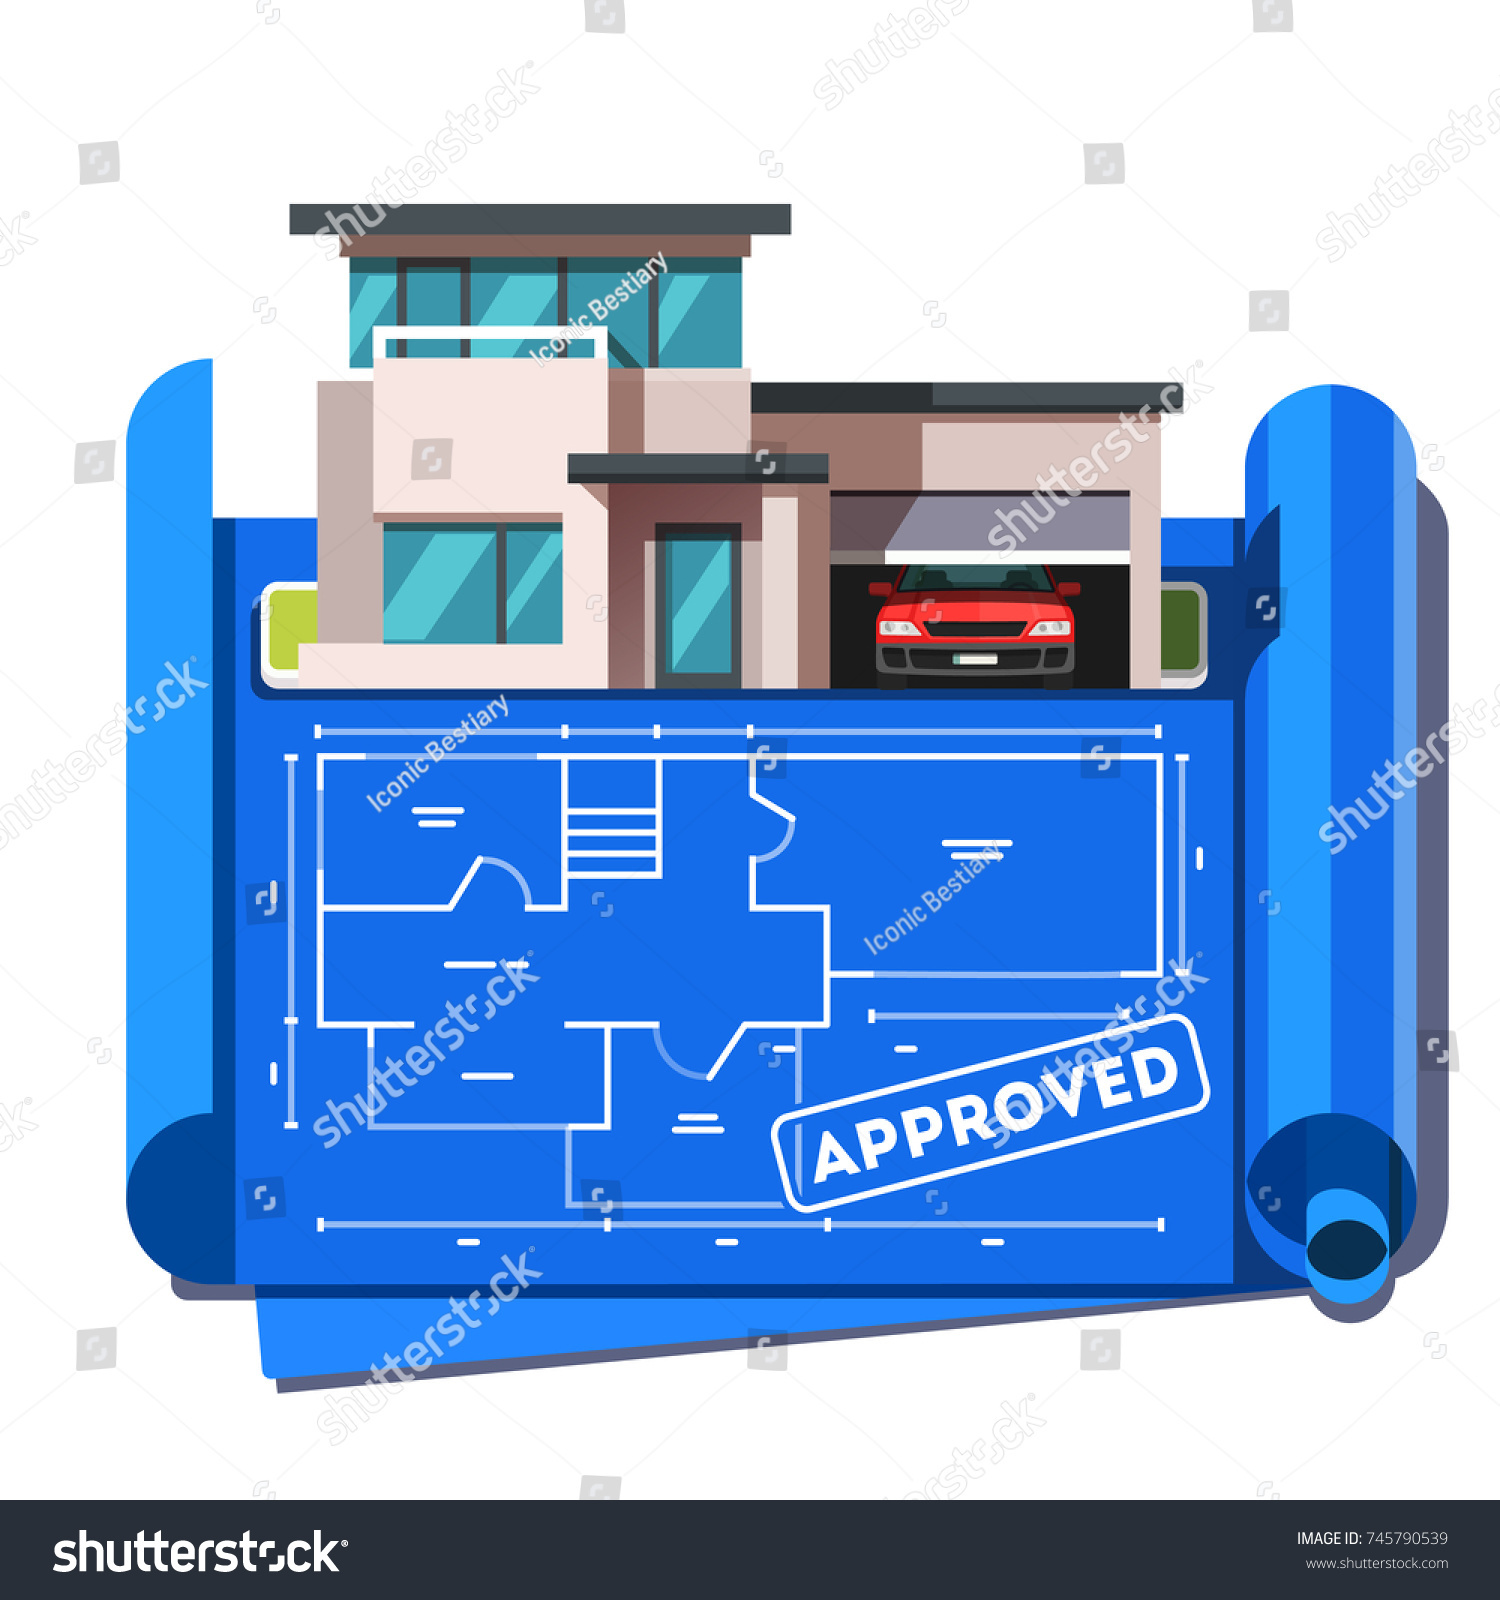 Architect floor plan blueprint modern contemporary stock vector architect floor plan blueprint of modern contemporary architecture style mansion building with car garage approved malvernweather Images